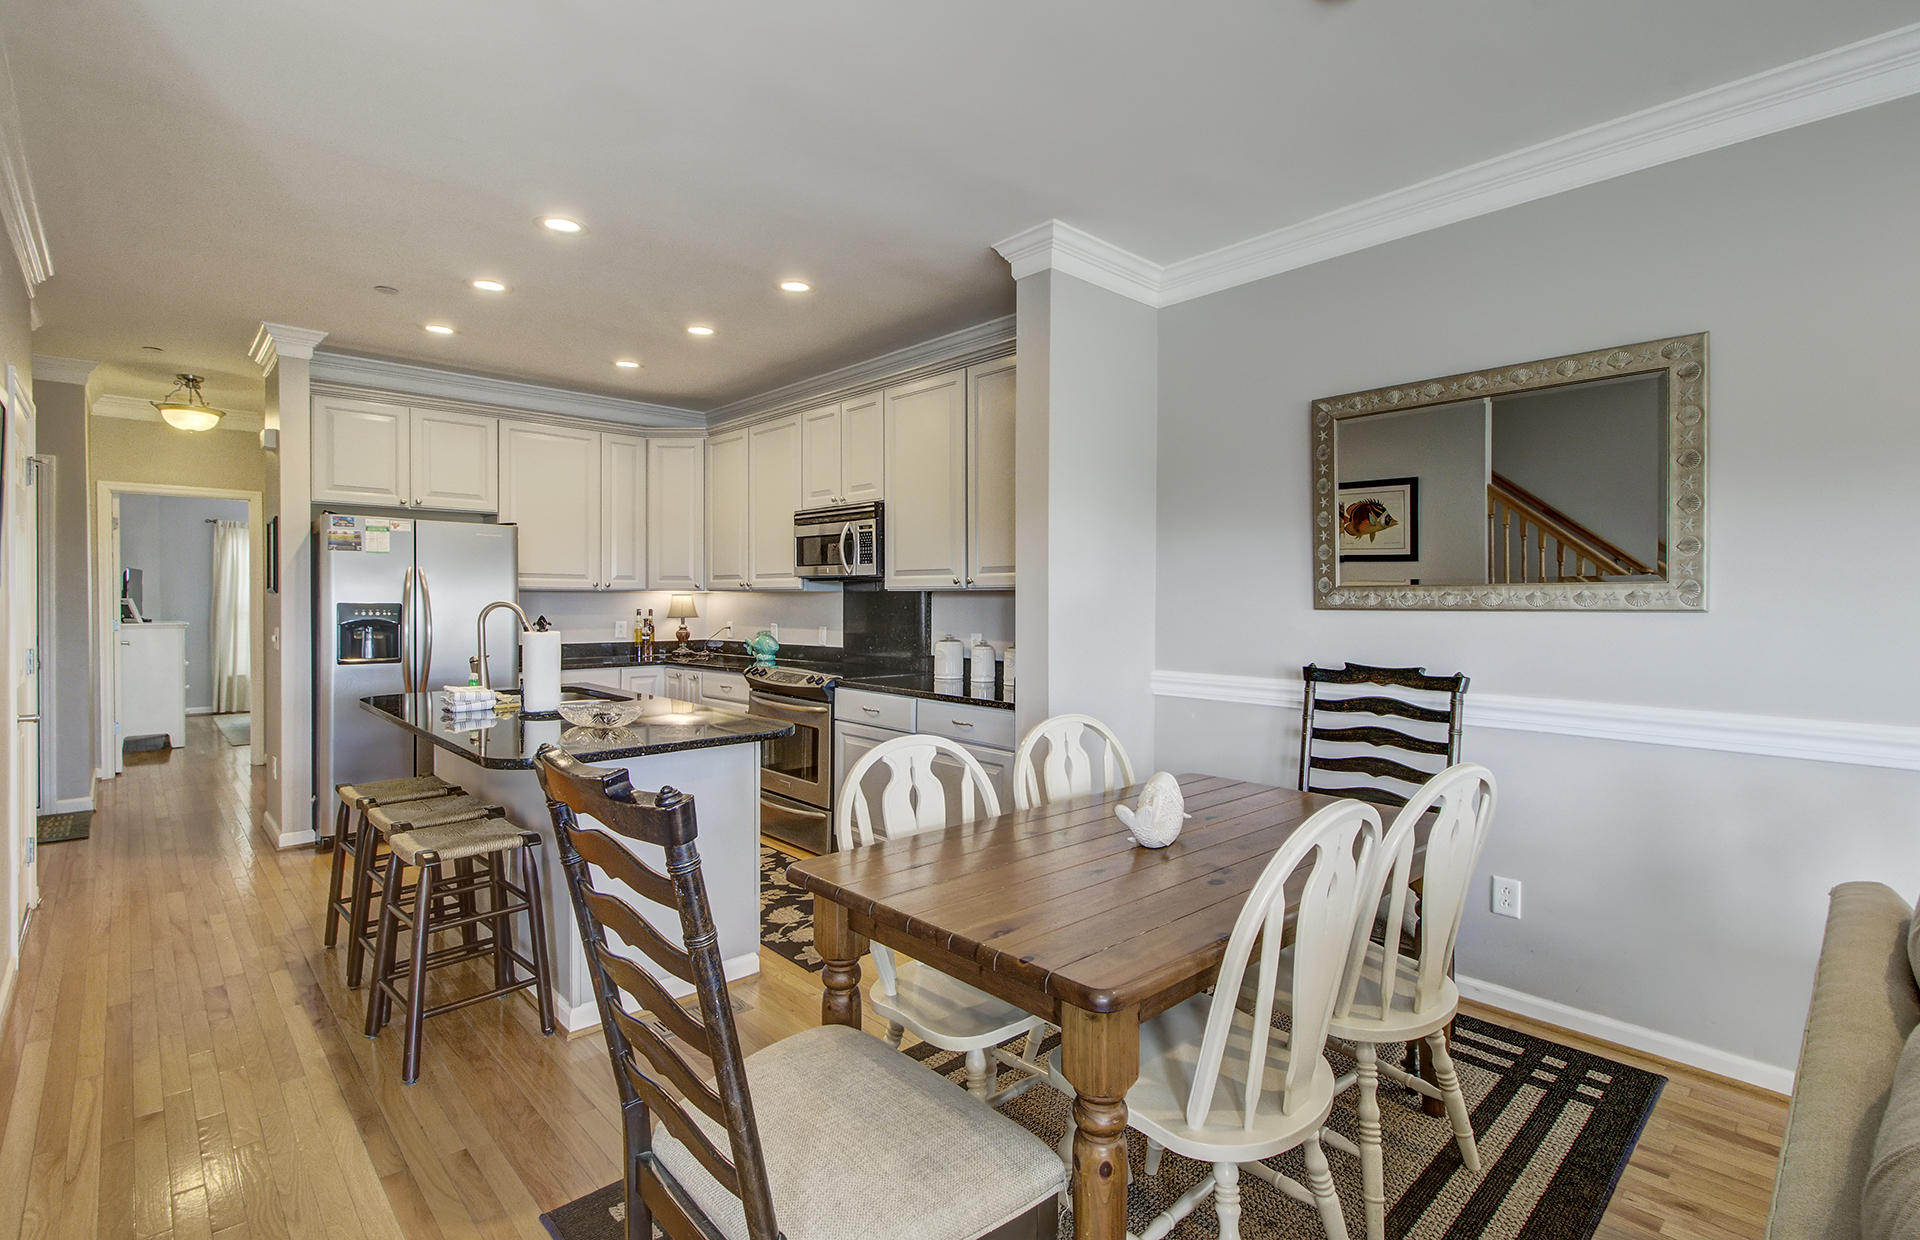 Waters Edge Homes For Sale - 80 2nd, Folly Beach, SC - 46